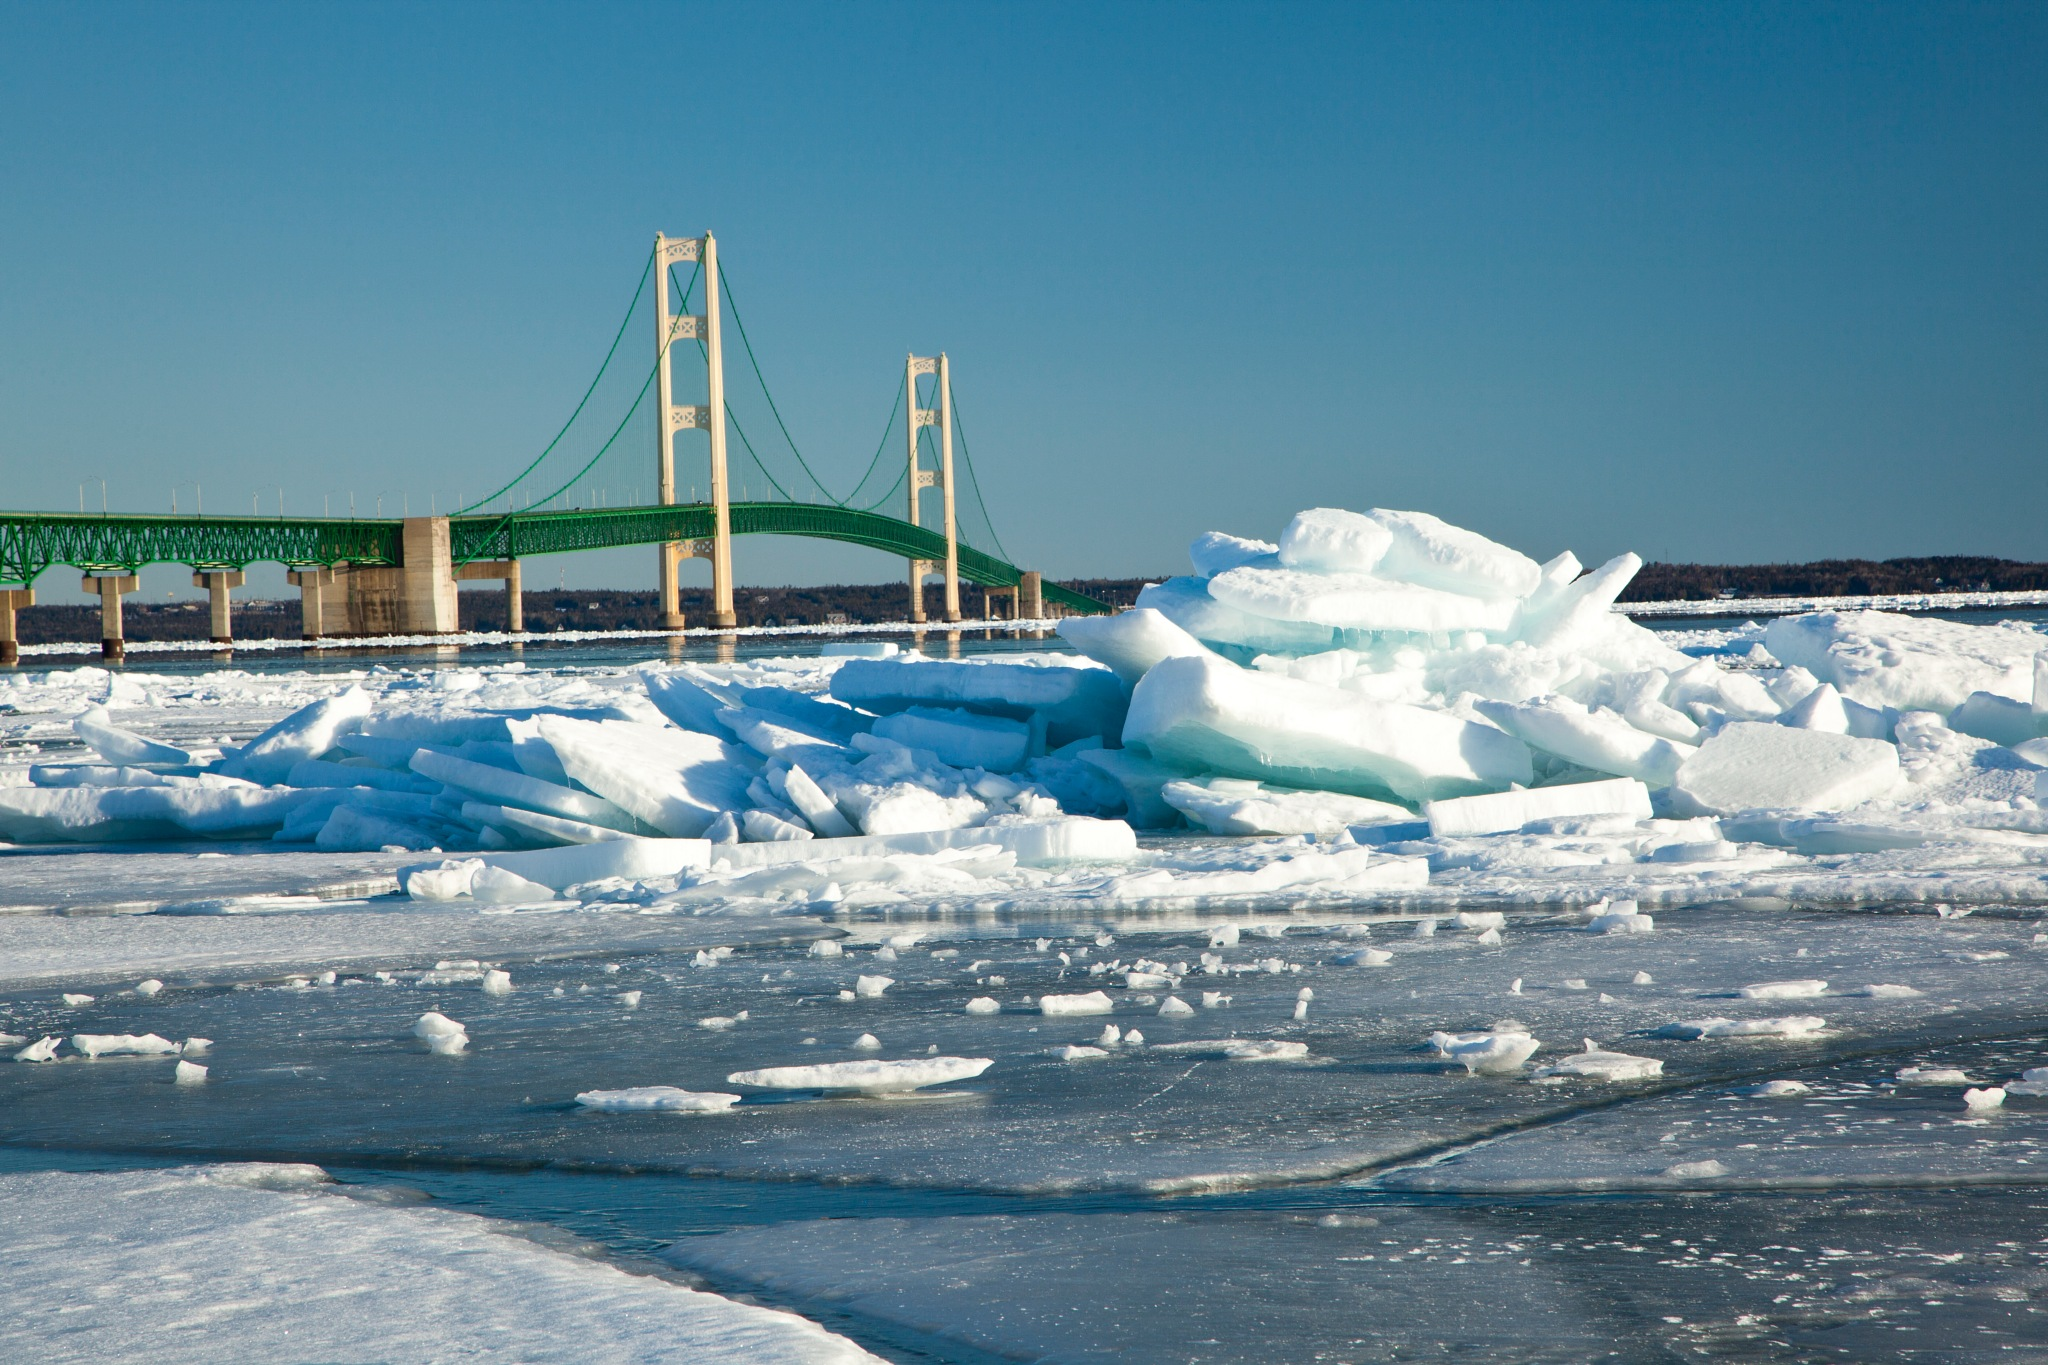 Mackinac Bridge and Ice Floes by Kevin Kludy